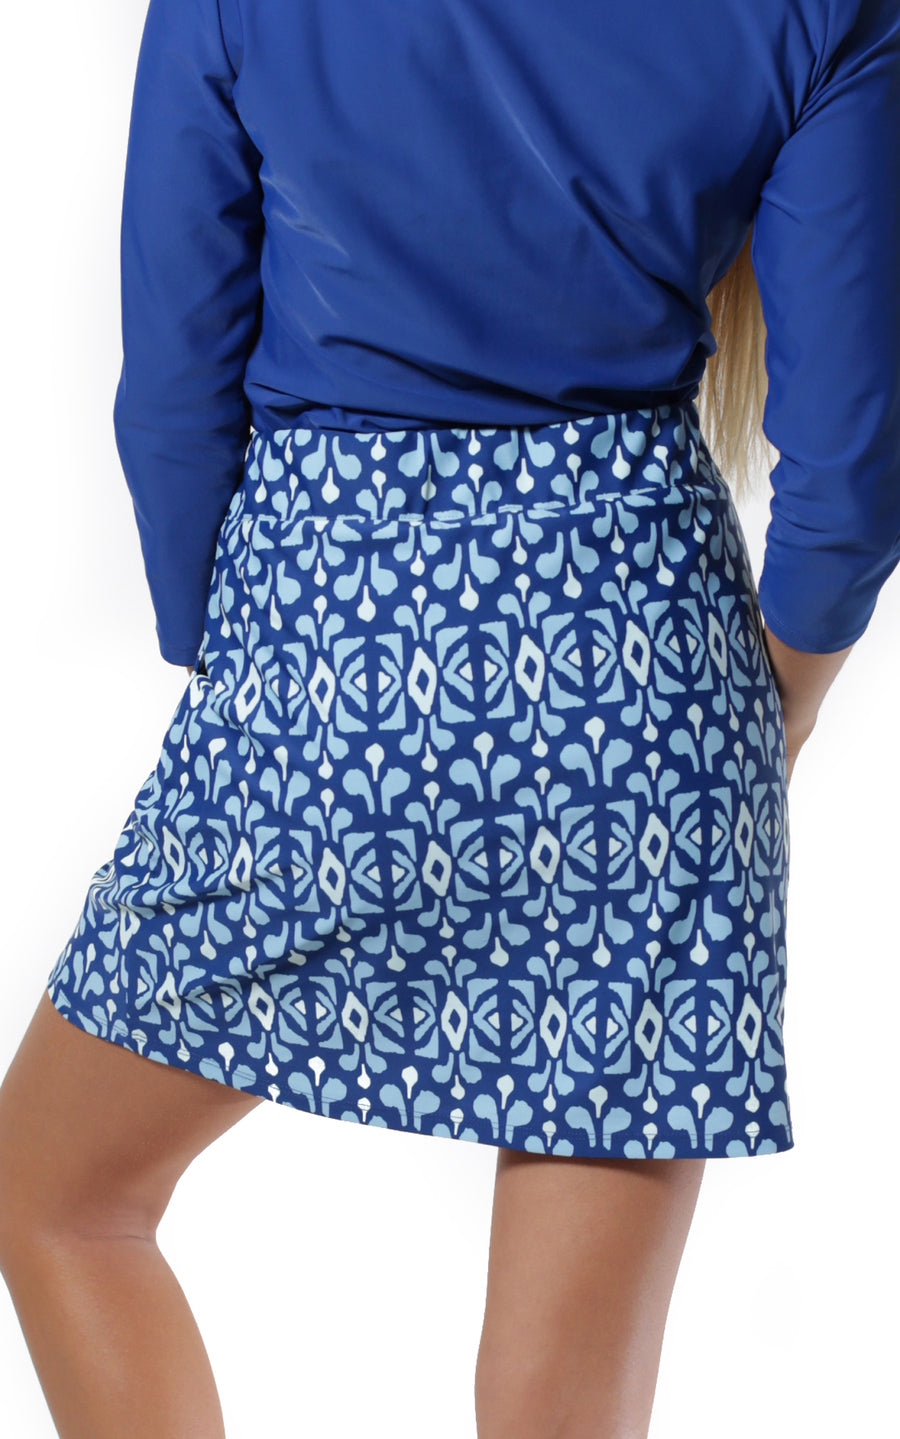 All For Color-Midnight Blue Harbor Isle Skort - FINAL SALE-Bottoms